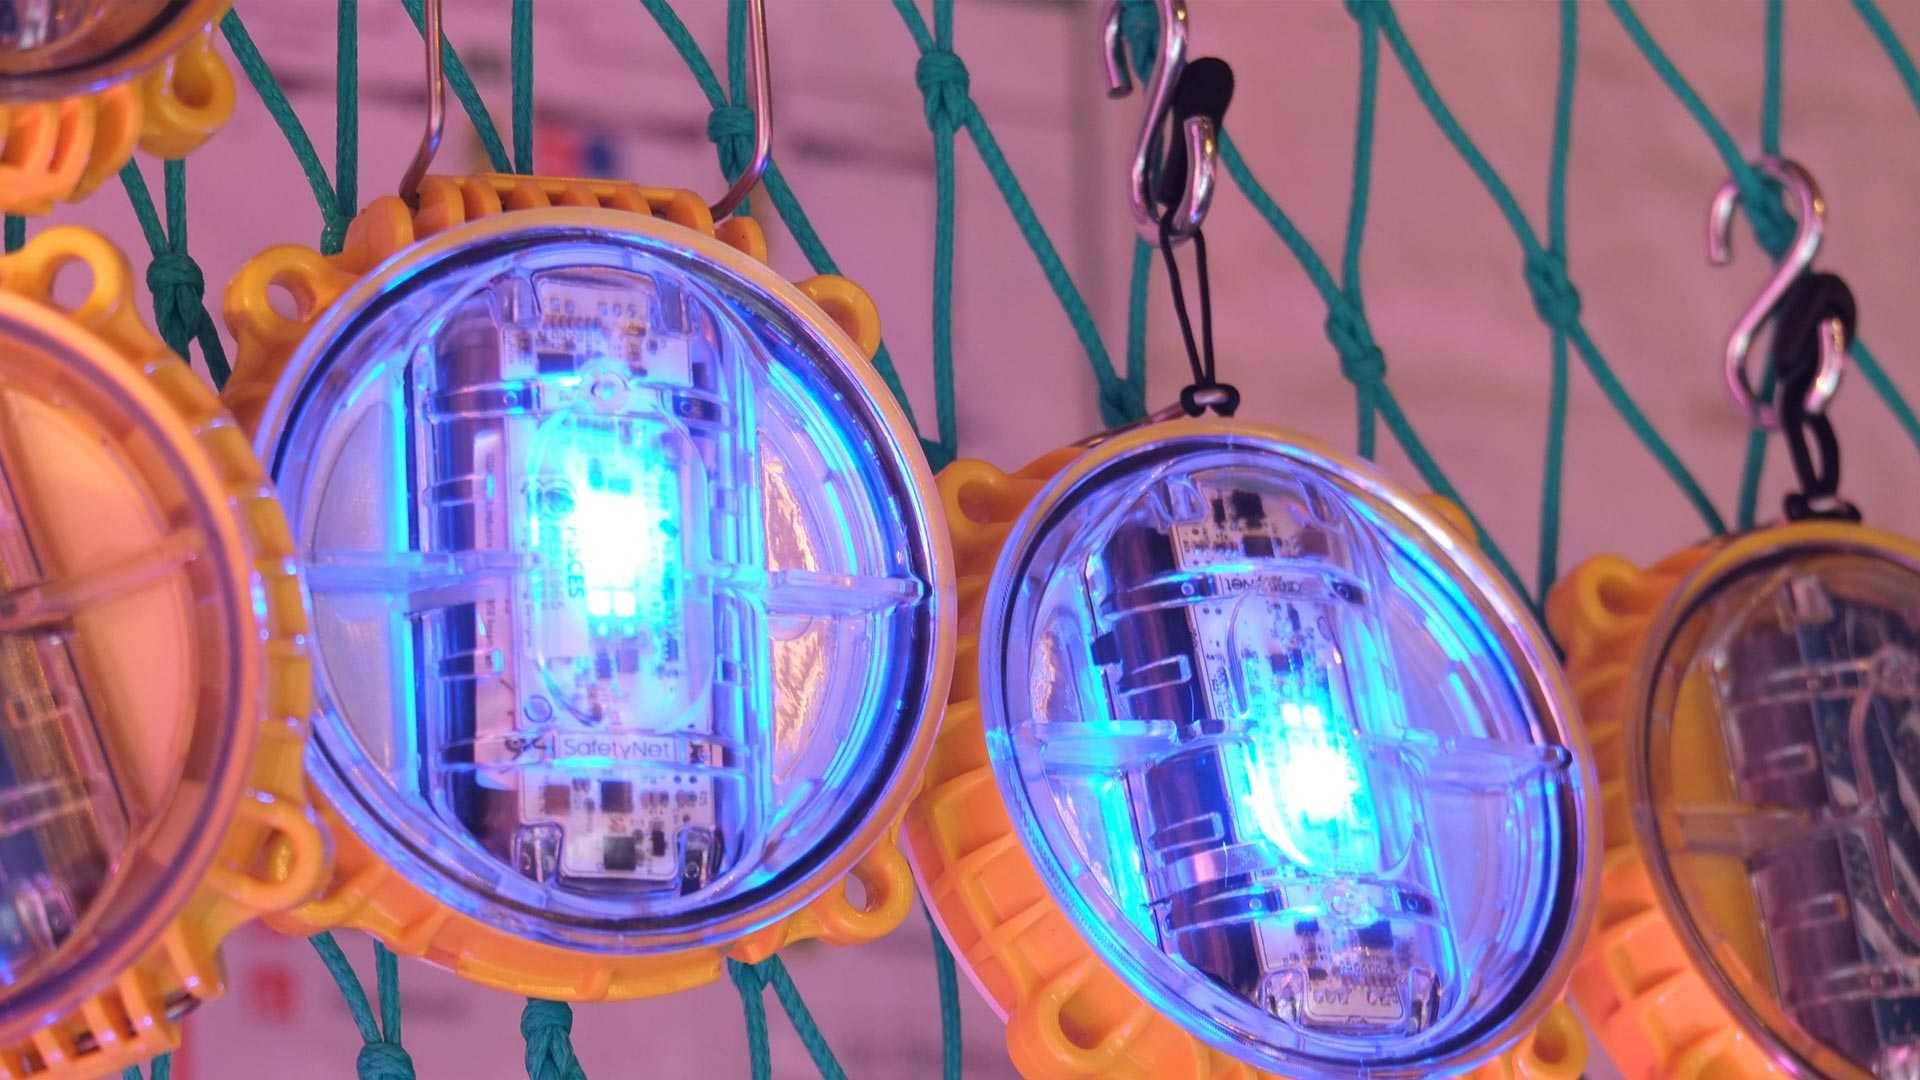 Light-emitting device called 'Pisces' used by fisherment to prevent bycatch